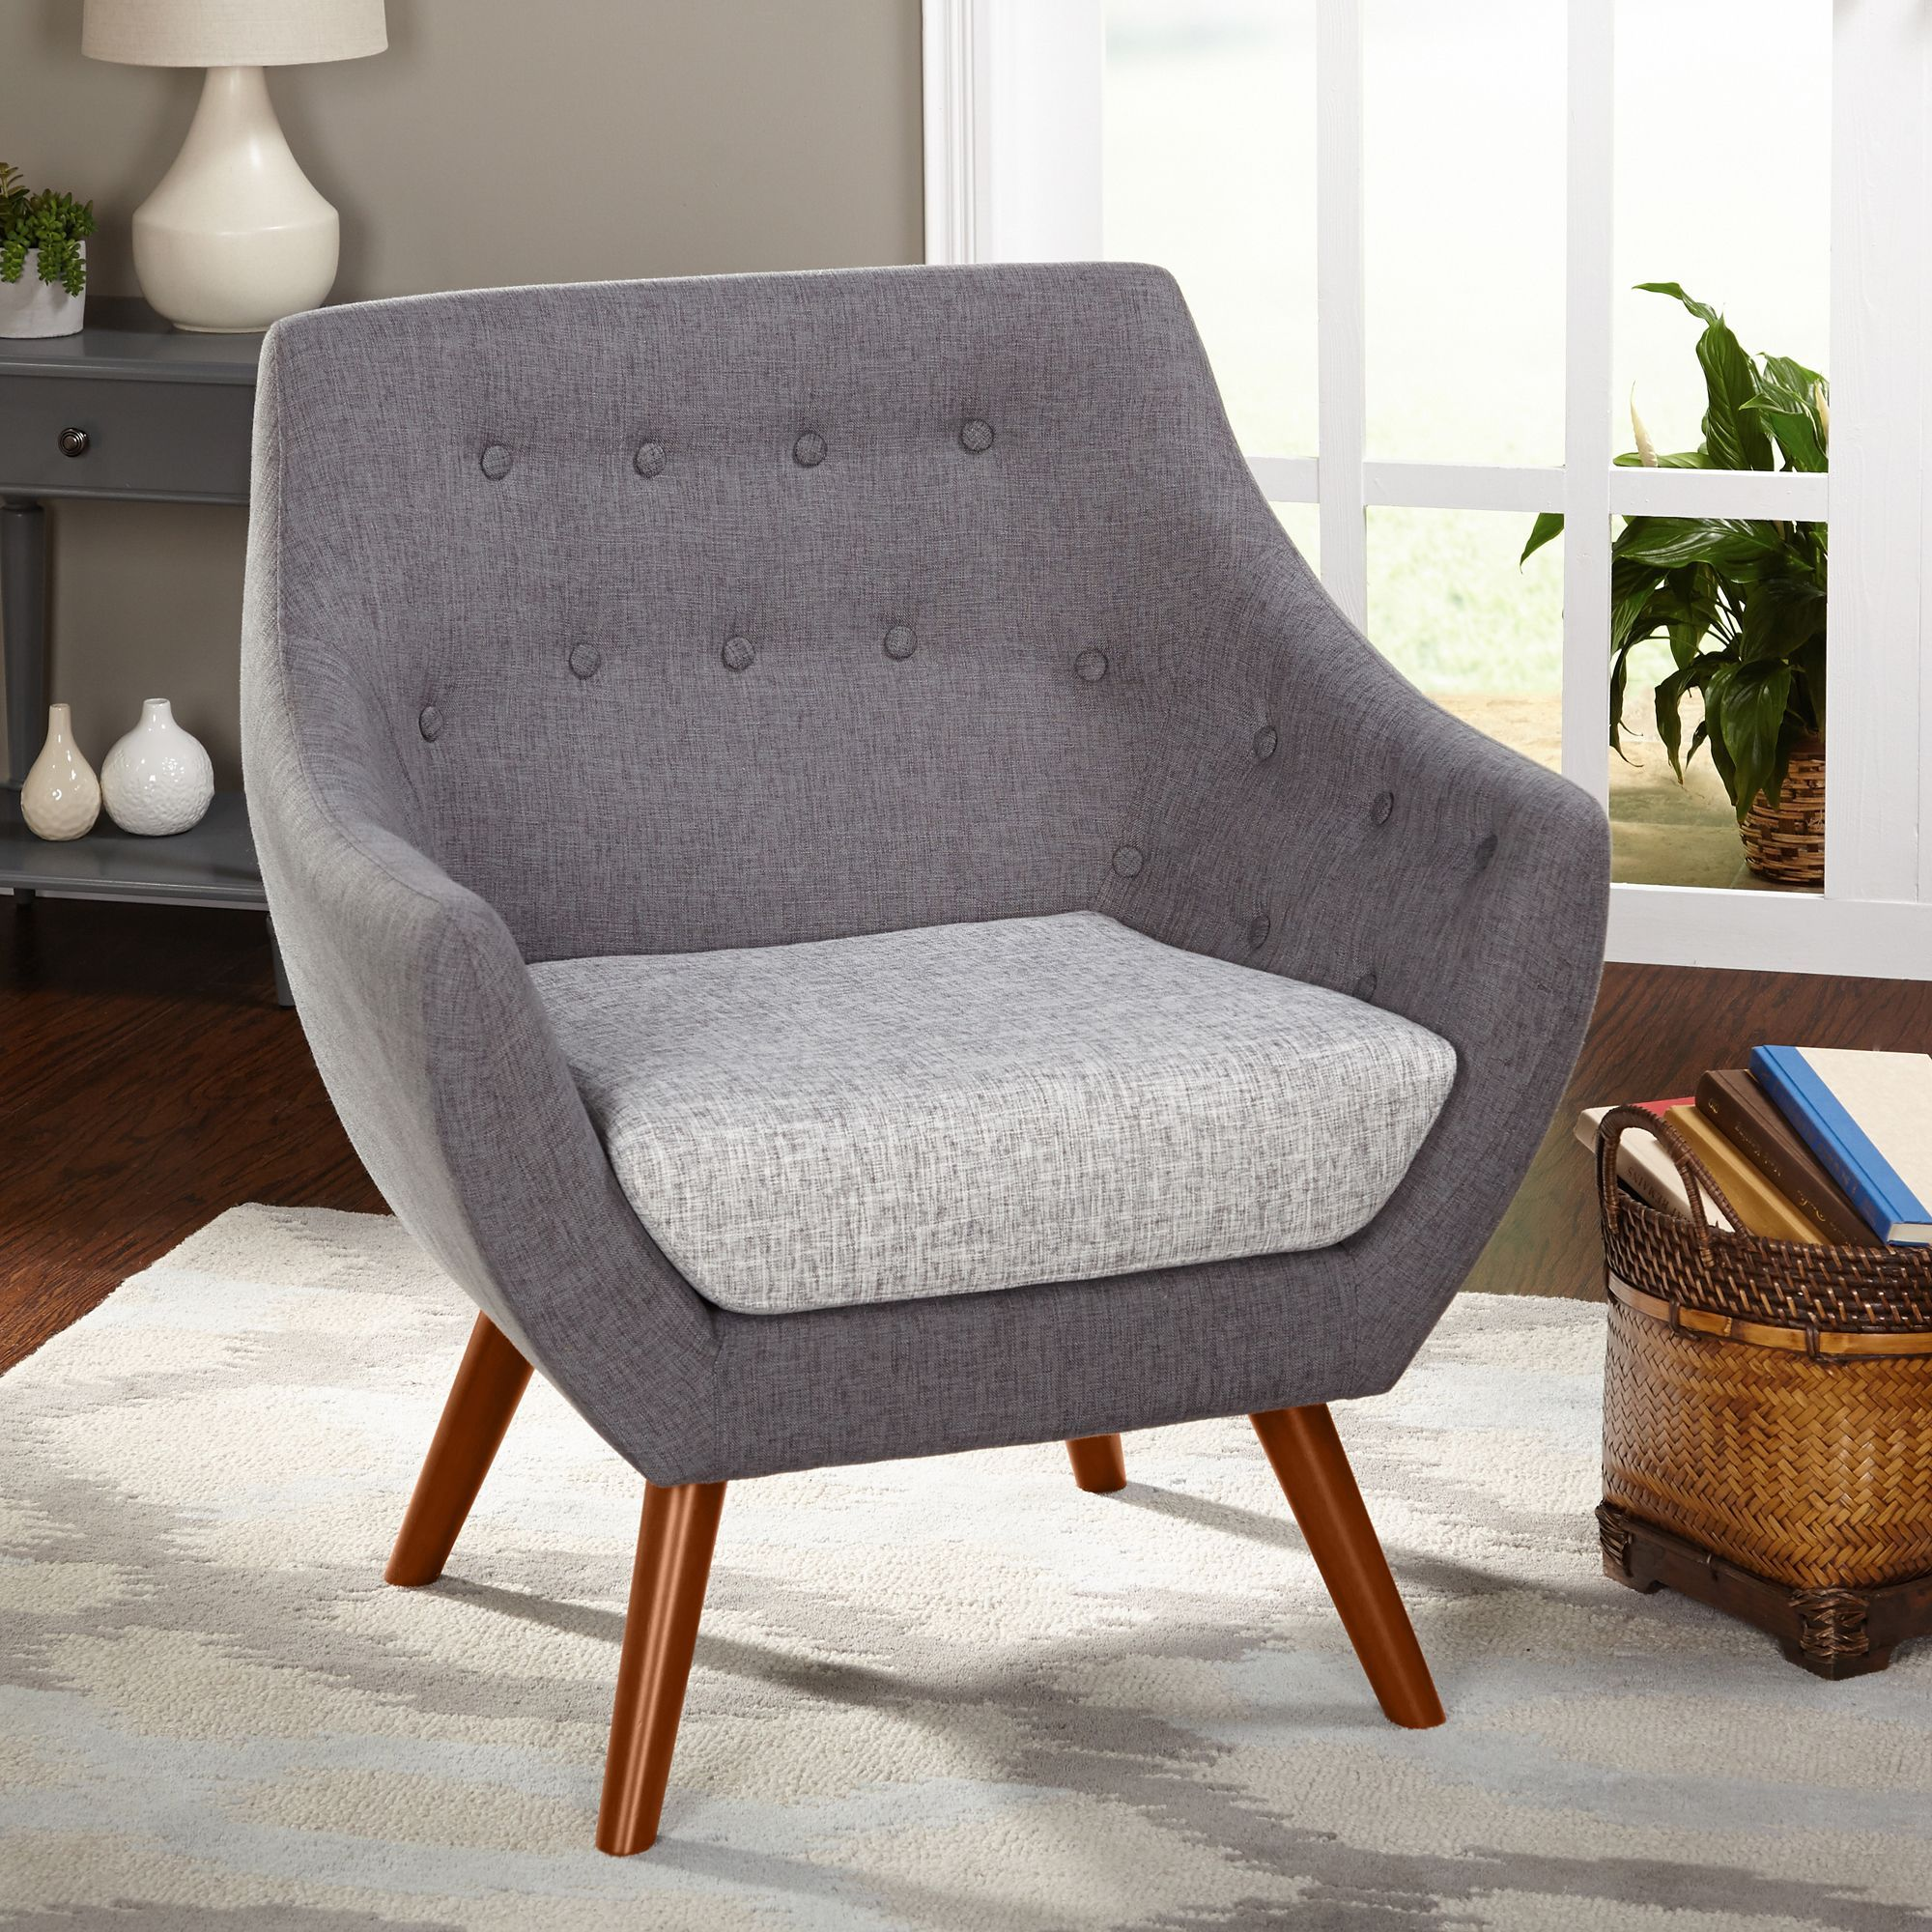 The Mid-Century inspired Elijah Chair is the perfect place to relax ...